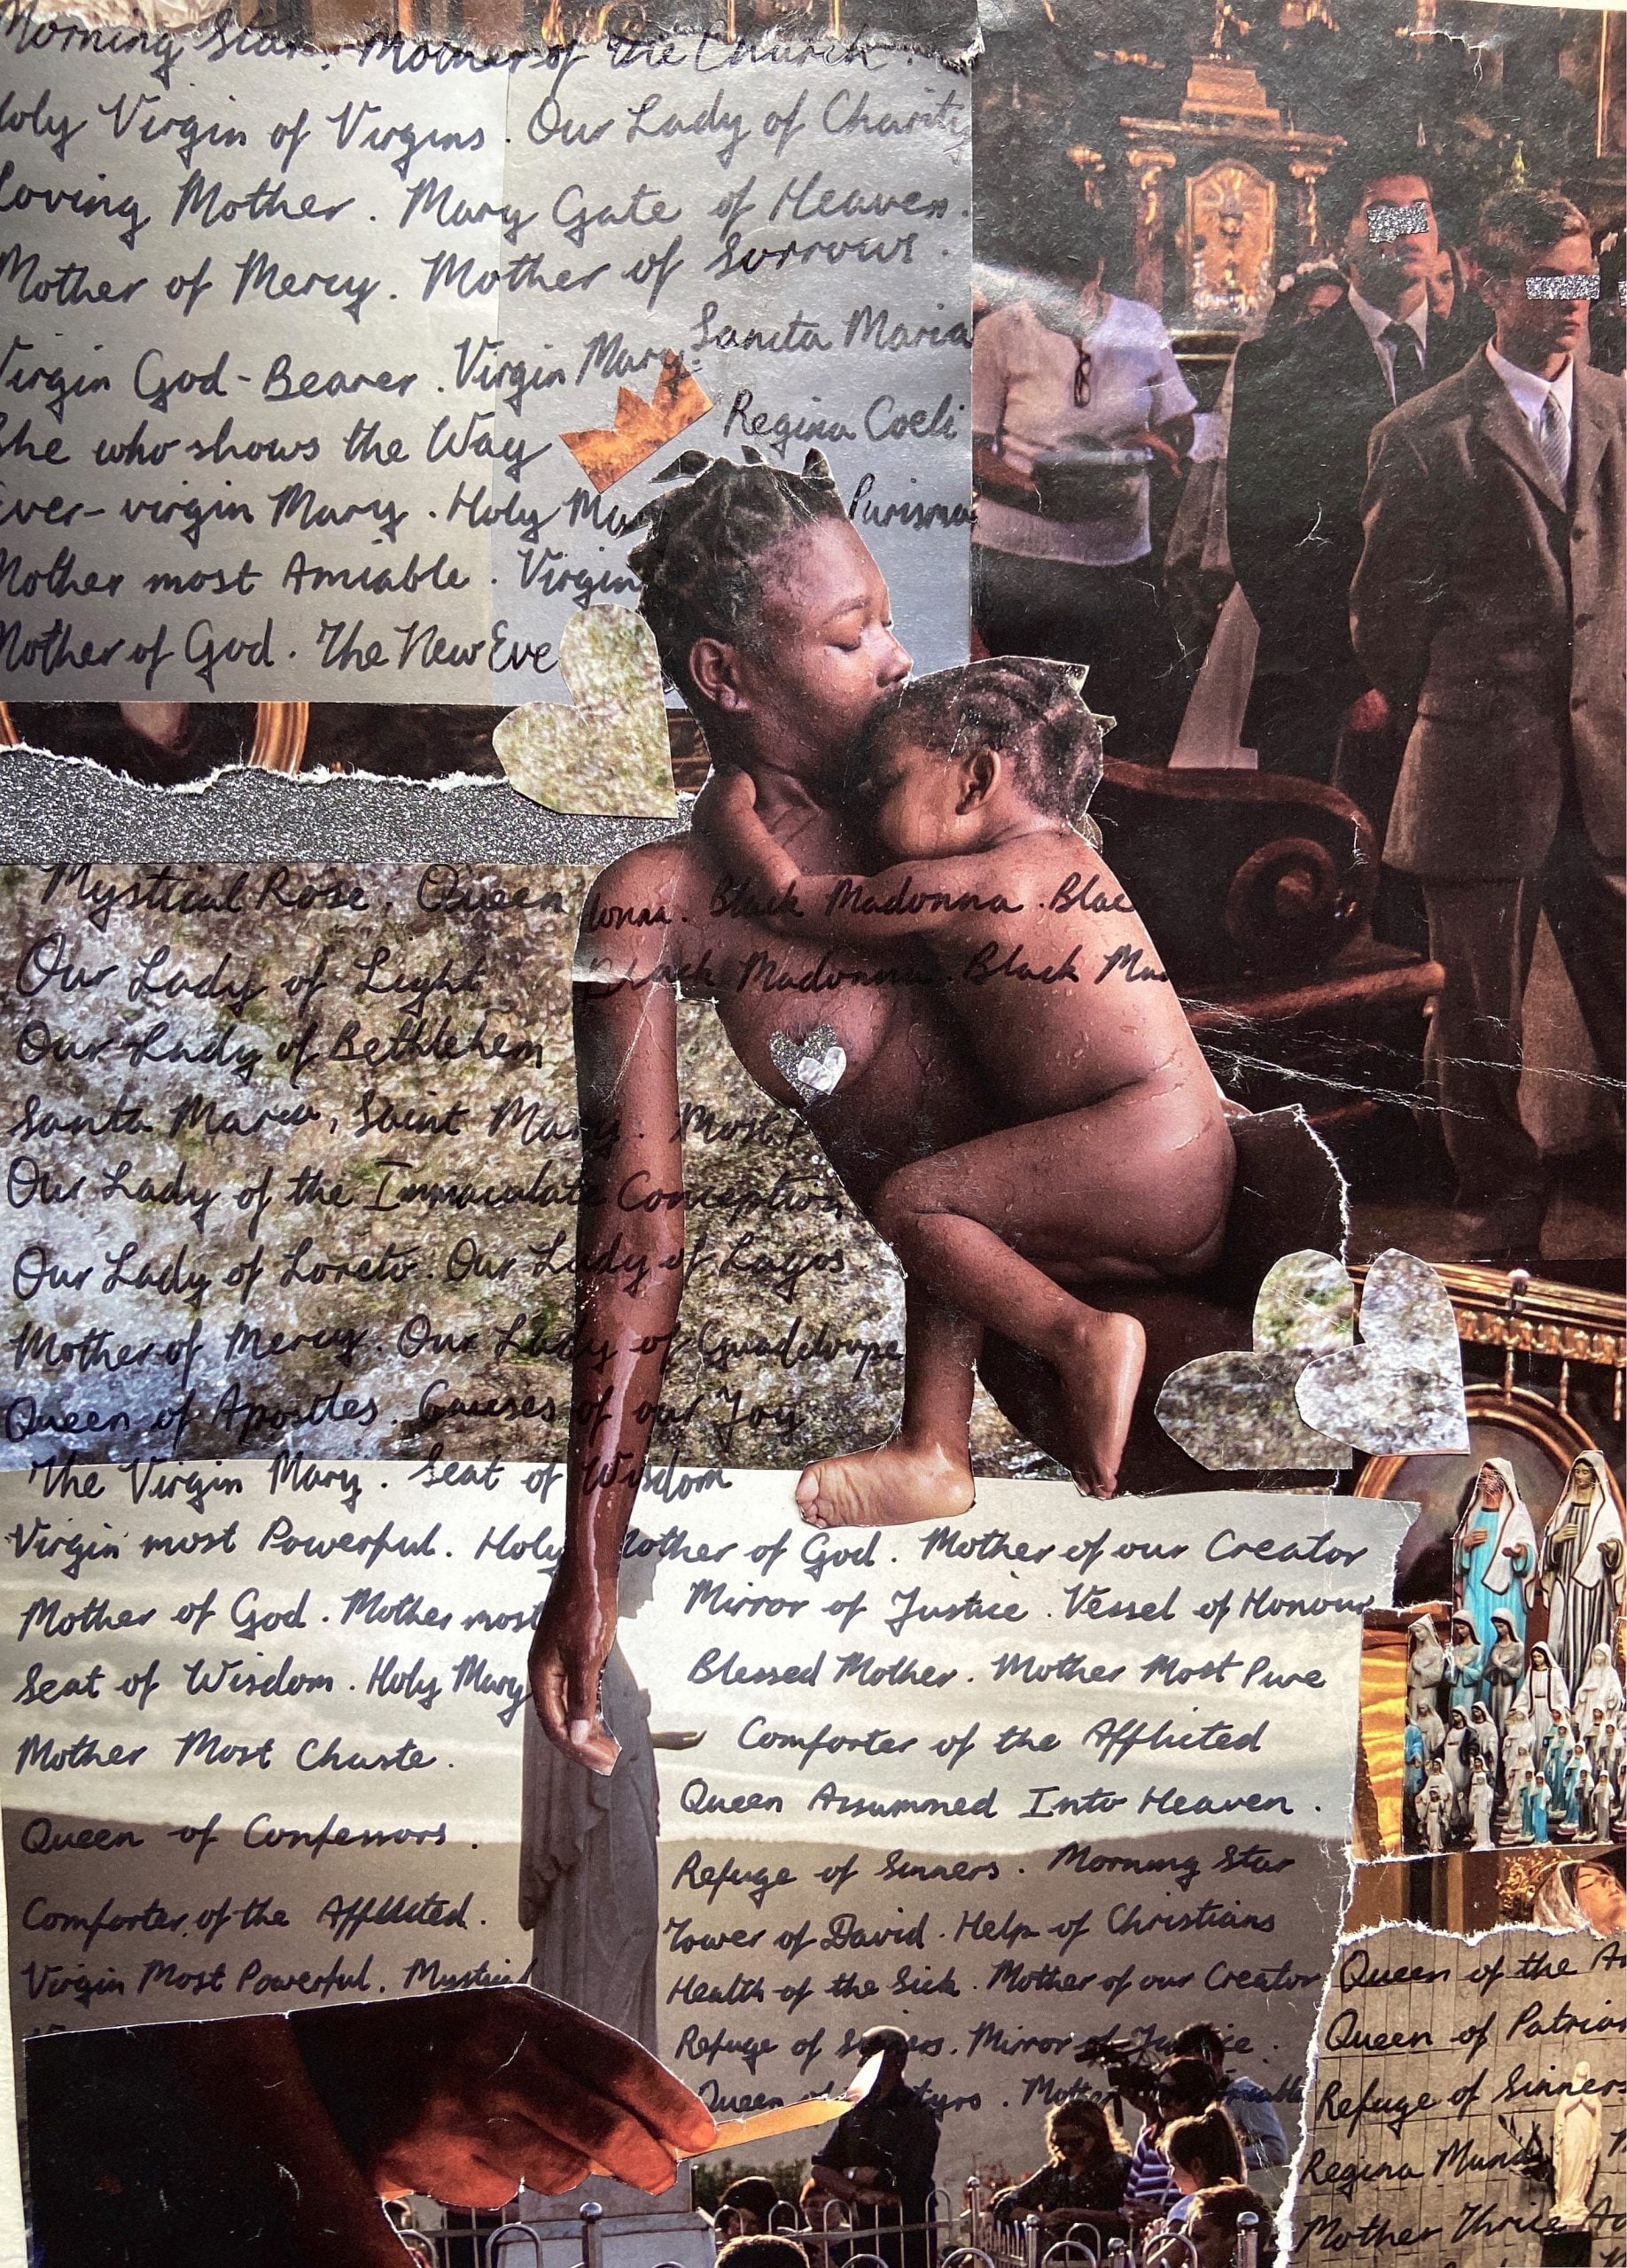 A near-naked African mother and baby appear at the centre of a swirling collage of Catholic iconography as well as torn samples of religious thoughts handwritten on notepaper, while part of the backdrop shows young white men standing in the aisles of a church during what appears to be a wedding ceremony. Censorship marks blank out their eyes.